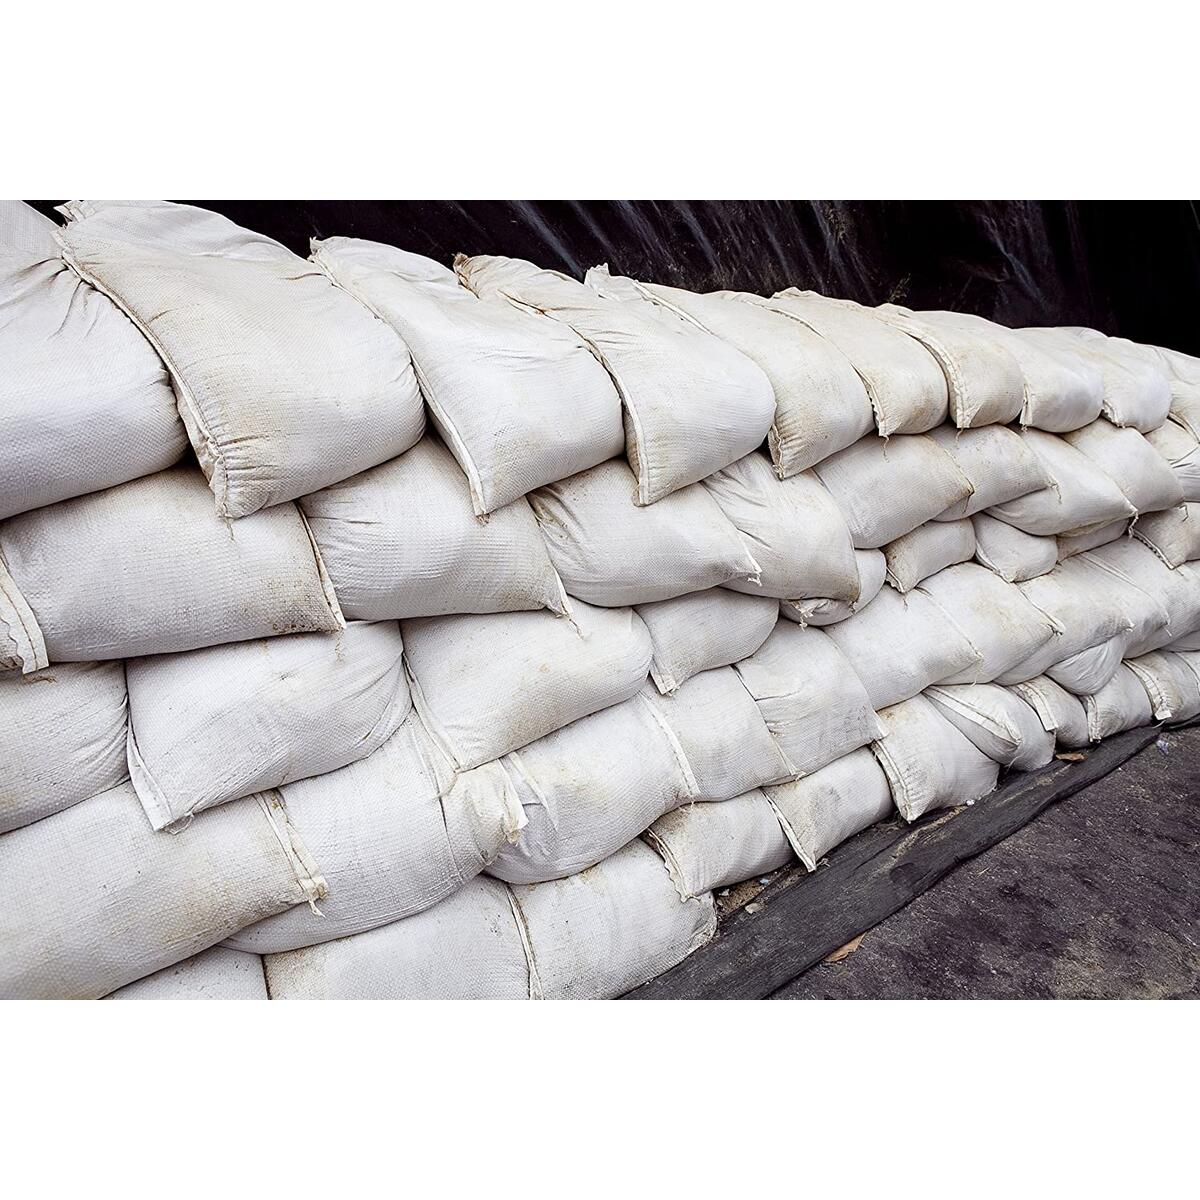 Empty White Sandbags Woven Polypropylene, Heavy Duty Sand bags for Flooding, Up to 1600 of UV Protection 14